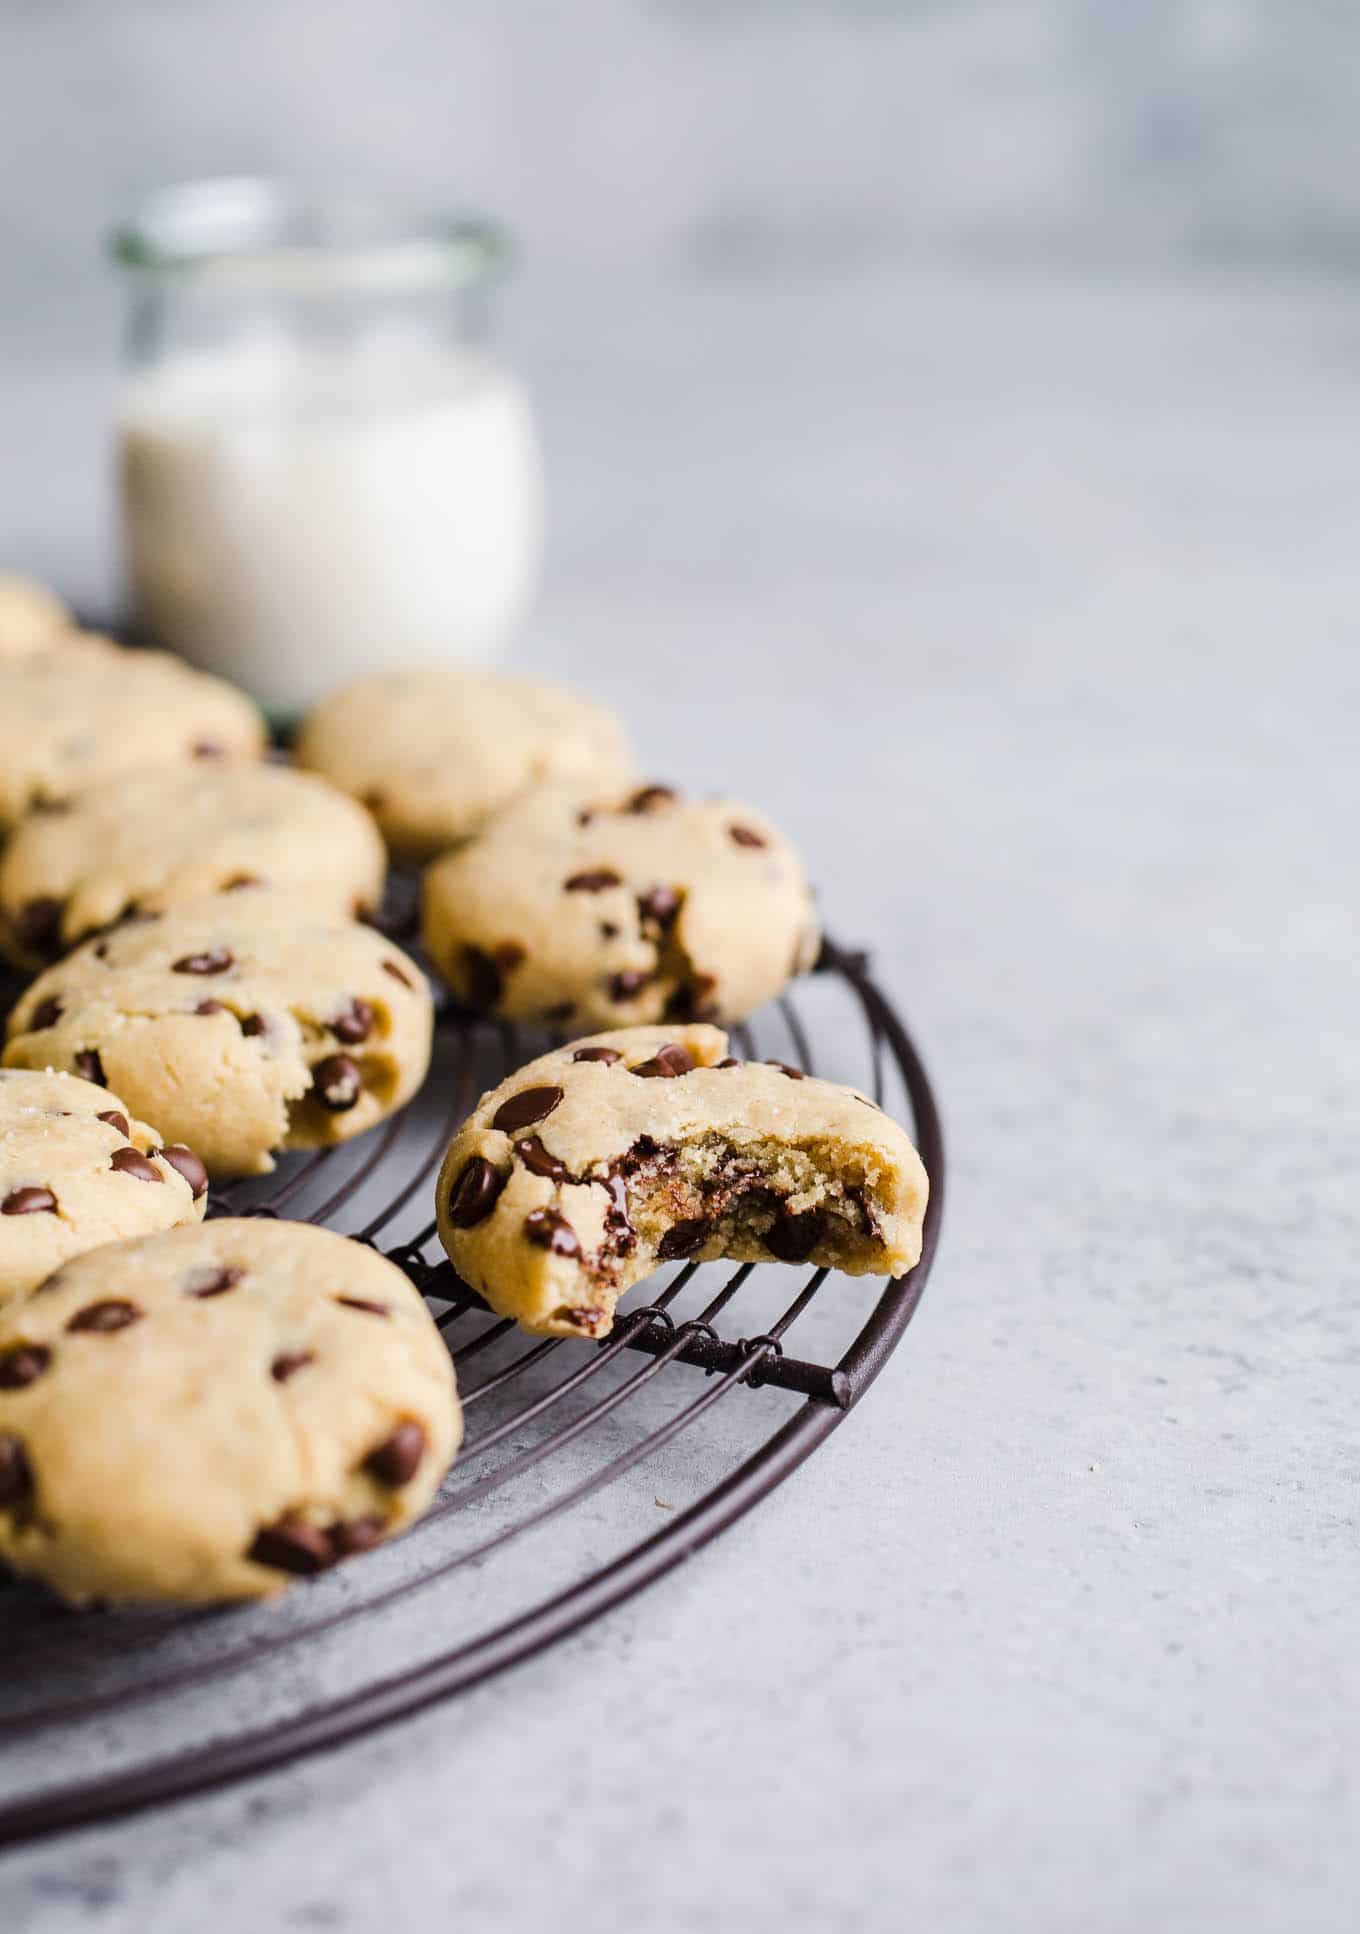 Gluten-Free Olive Oil Chocolate Chip Cookies made with almond flour, olive oil, maple syrup and chocolate chips. A healthy chocolate chip cookie recipe! Vegan.